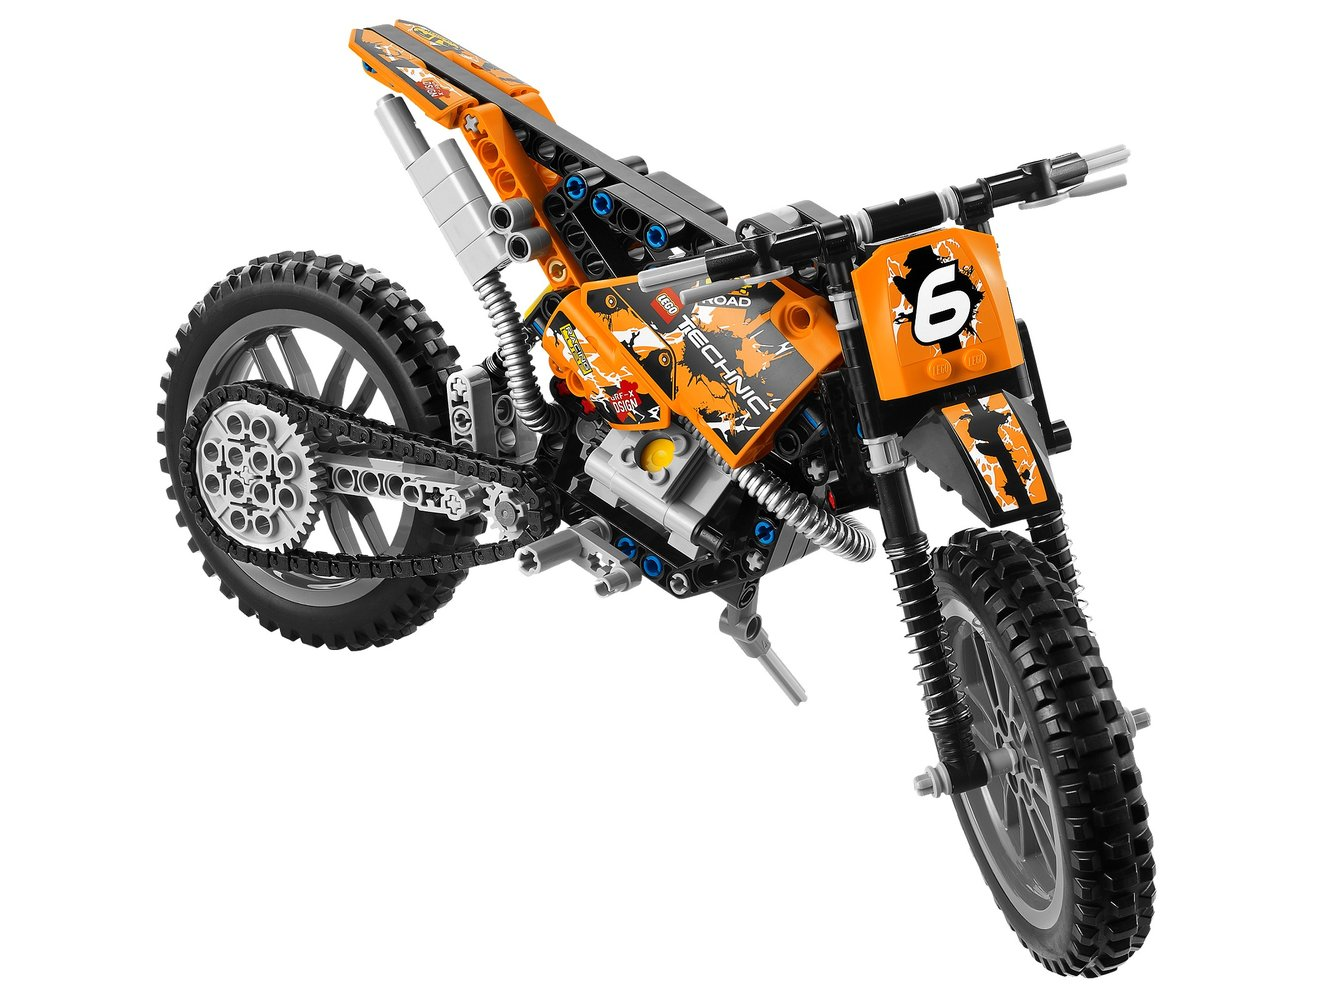 Moto Cross Bike